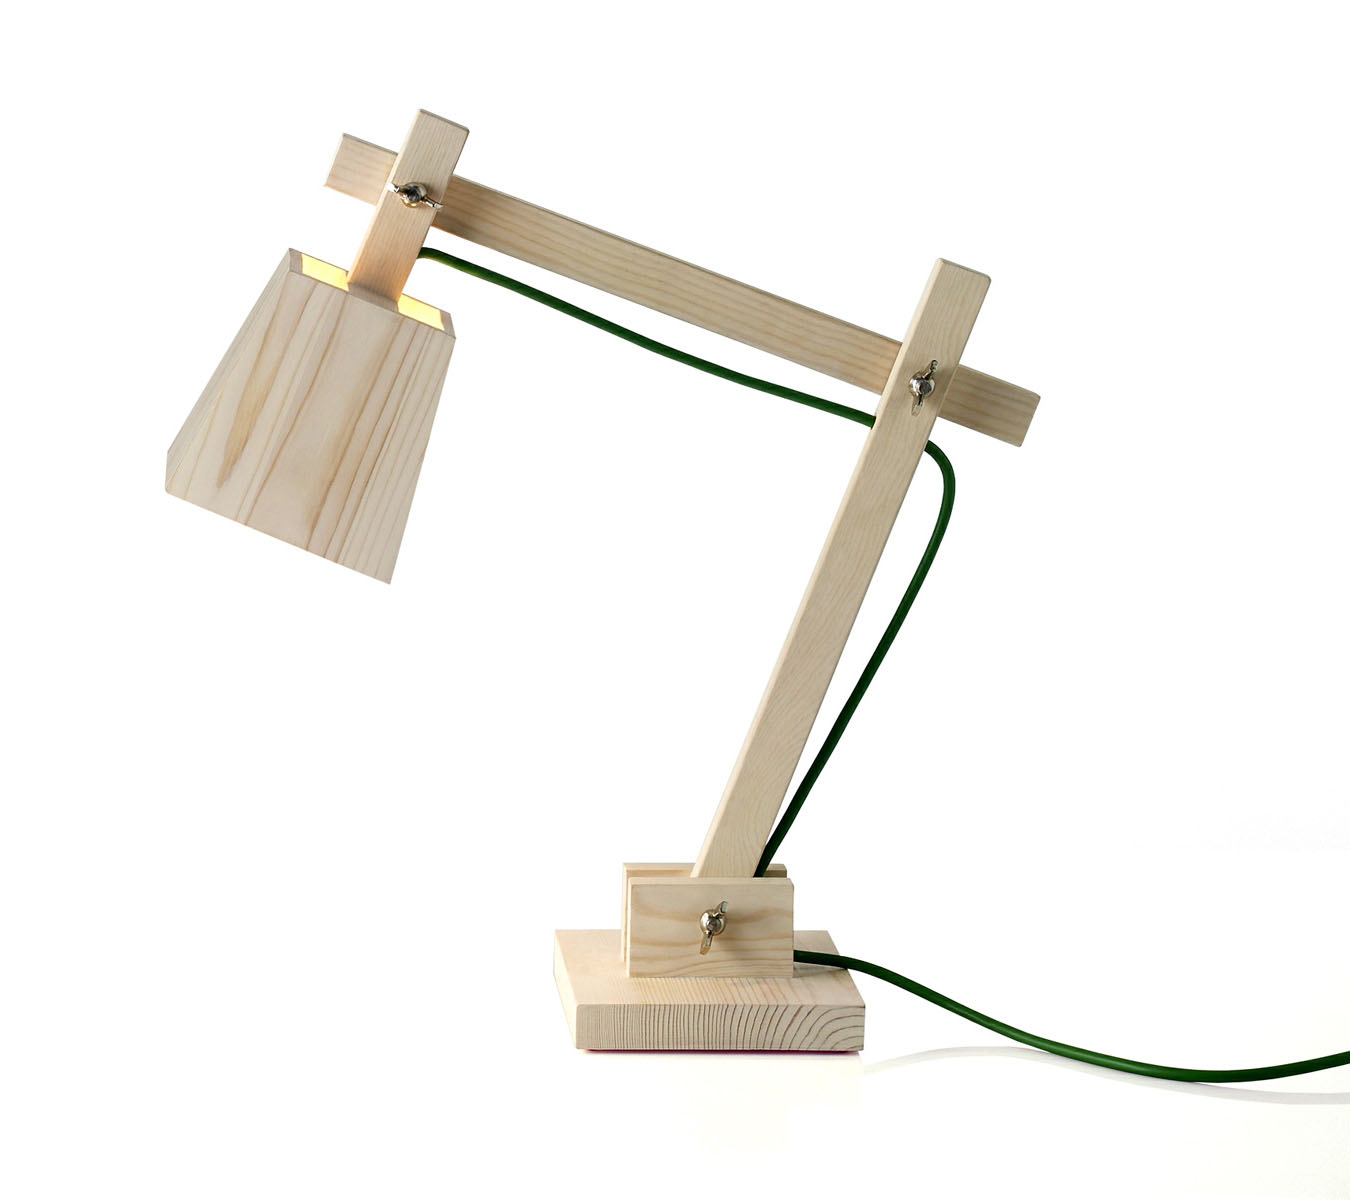 Wood-Lamp-frei-1200x1200.jpg